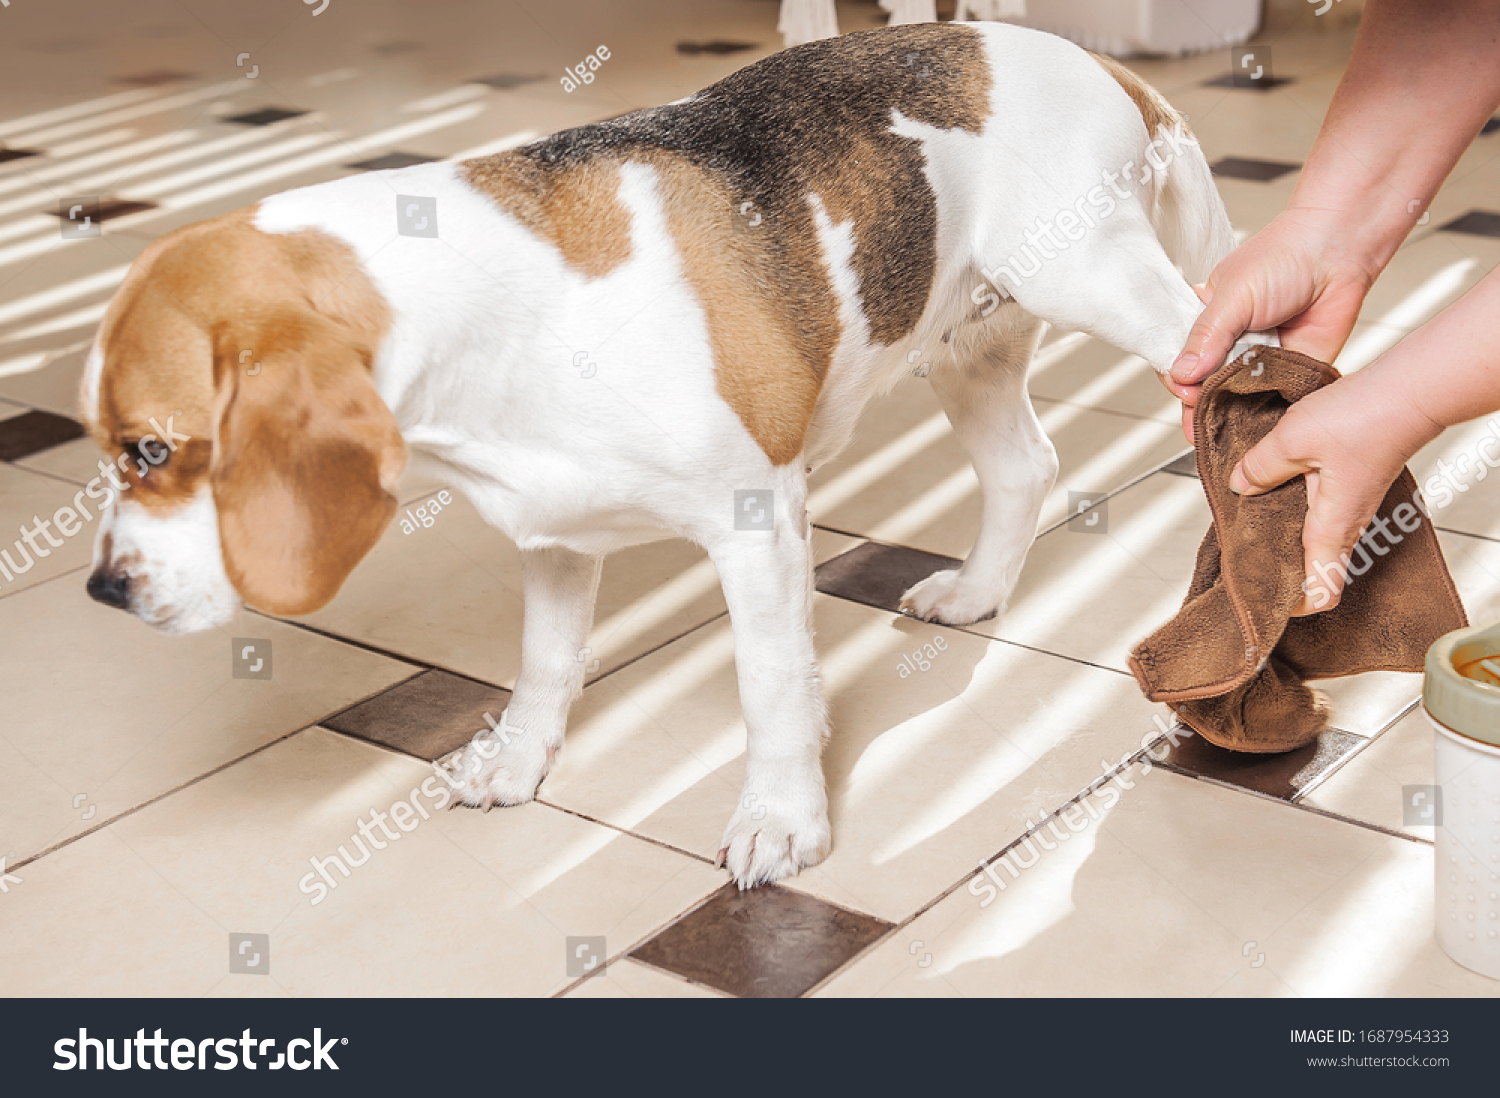 the mistress washes the dog's paws for a beagle and wipes the wet paws with a rag. glass for washing paws. paw washing device #1687954333